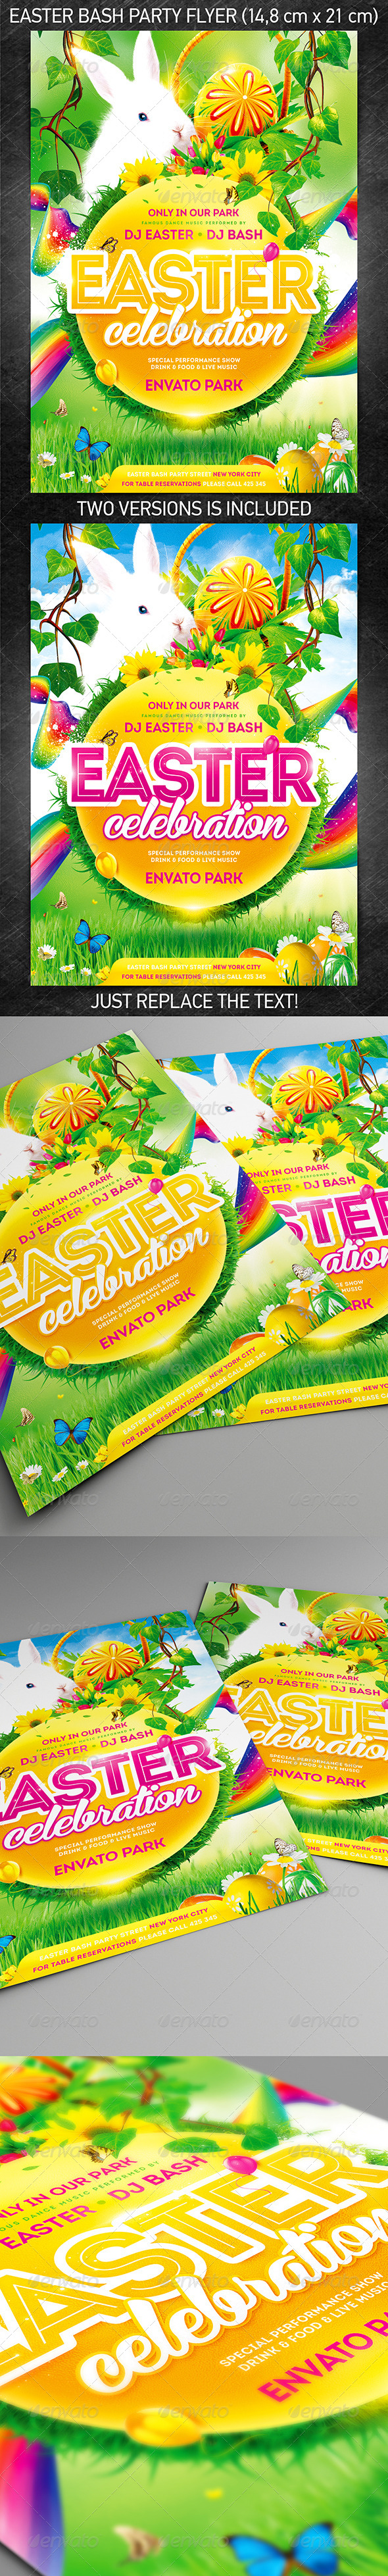 GraphicRiver Easter Bash Party Flyer 7140541